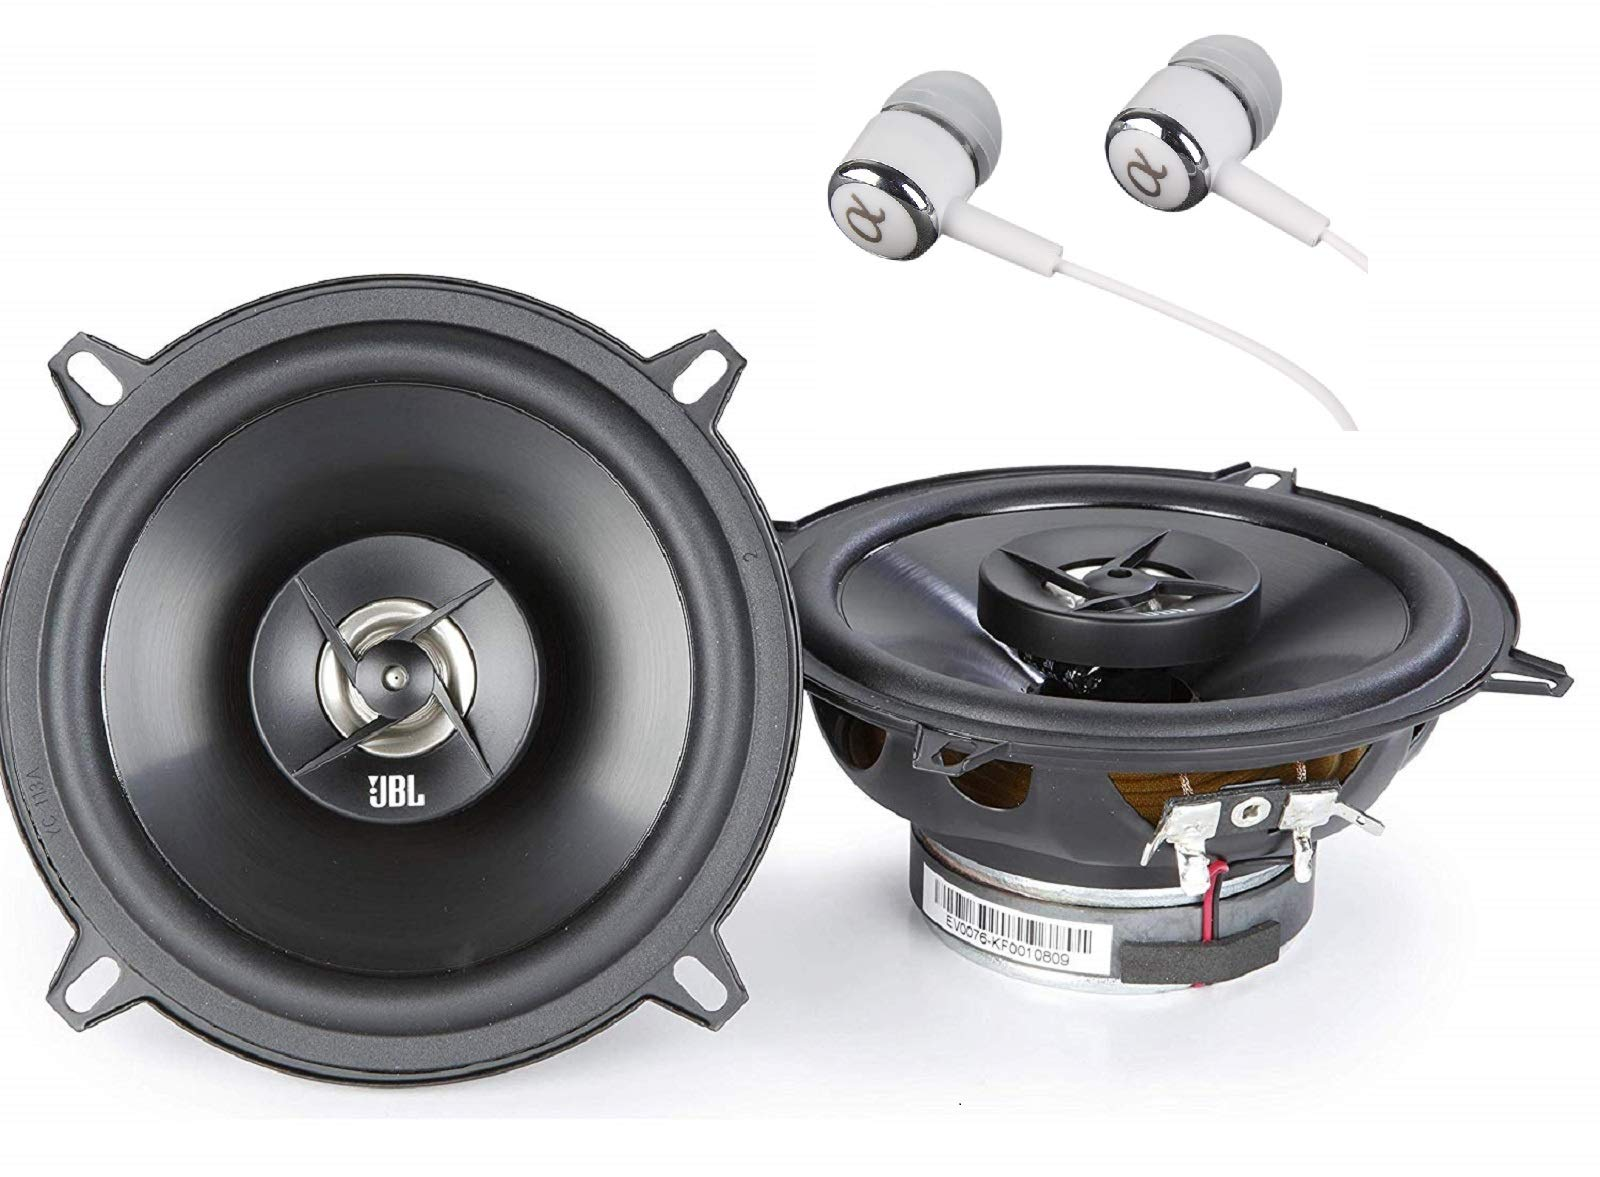 "JBL Stage 502 105W Max (35W RMS) 5-1/4"" 4 ohms Stage Series 2-Way Coaxial Car Audio Speakers / FREE ALPHASONIK EARBUDS"